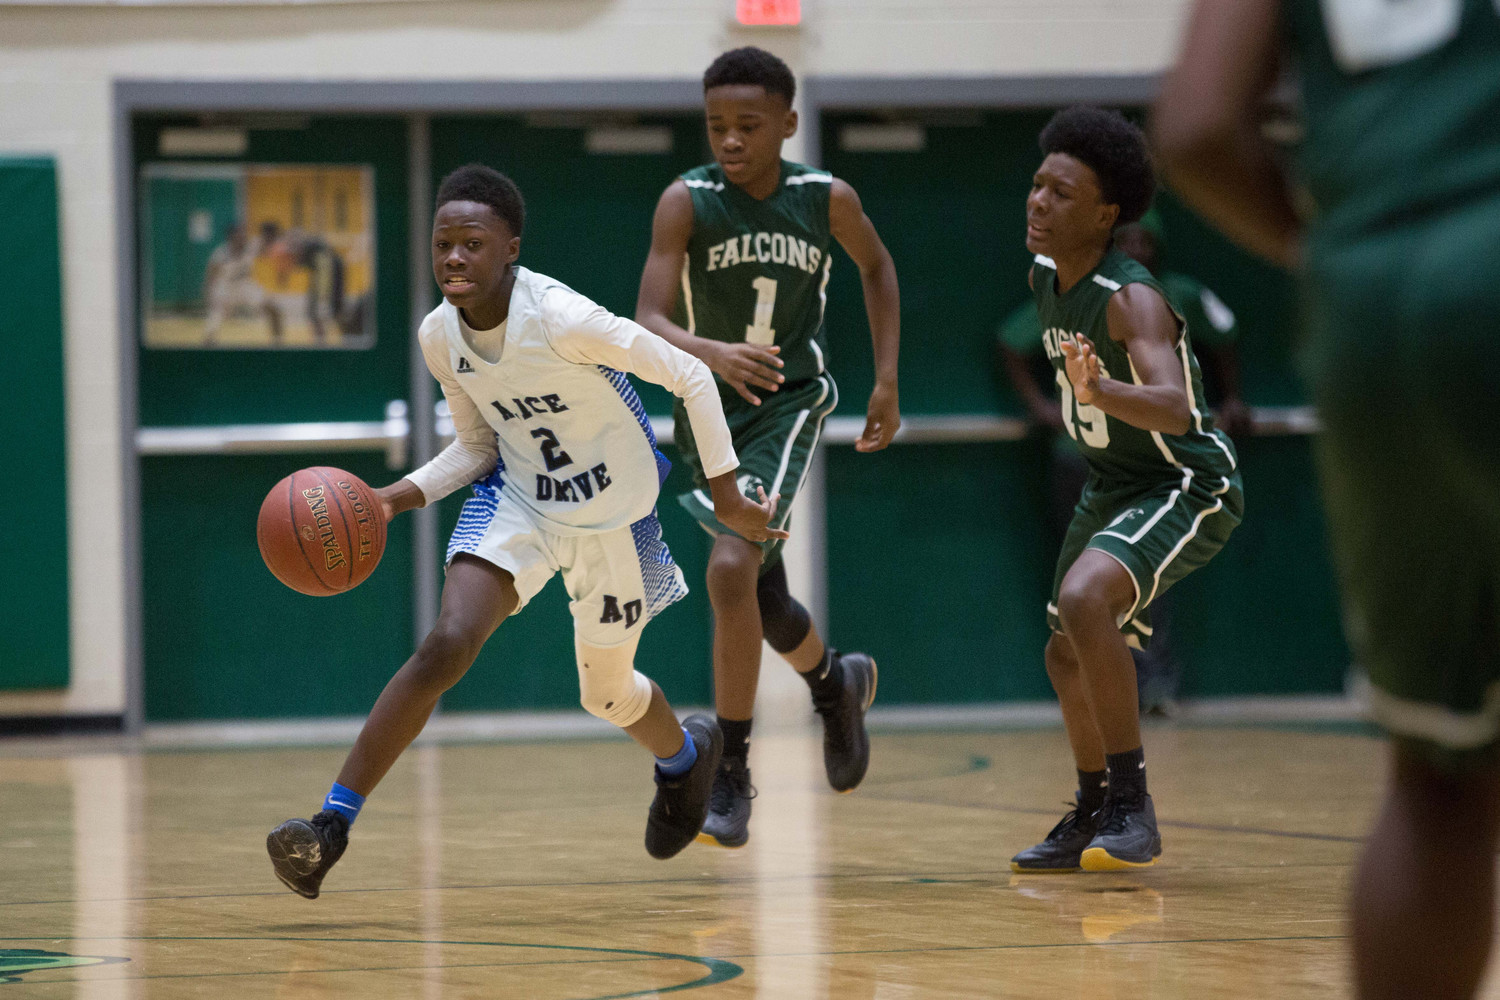 Alice Drive's Joseph Durant drives the ball down court as Chestnut Oaks defenders pursue during the Hawks' victory in the Sumter Middle School Conference basketball tournament on Saturday at Lakewood High's The Swamp.